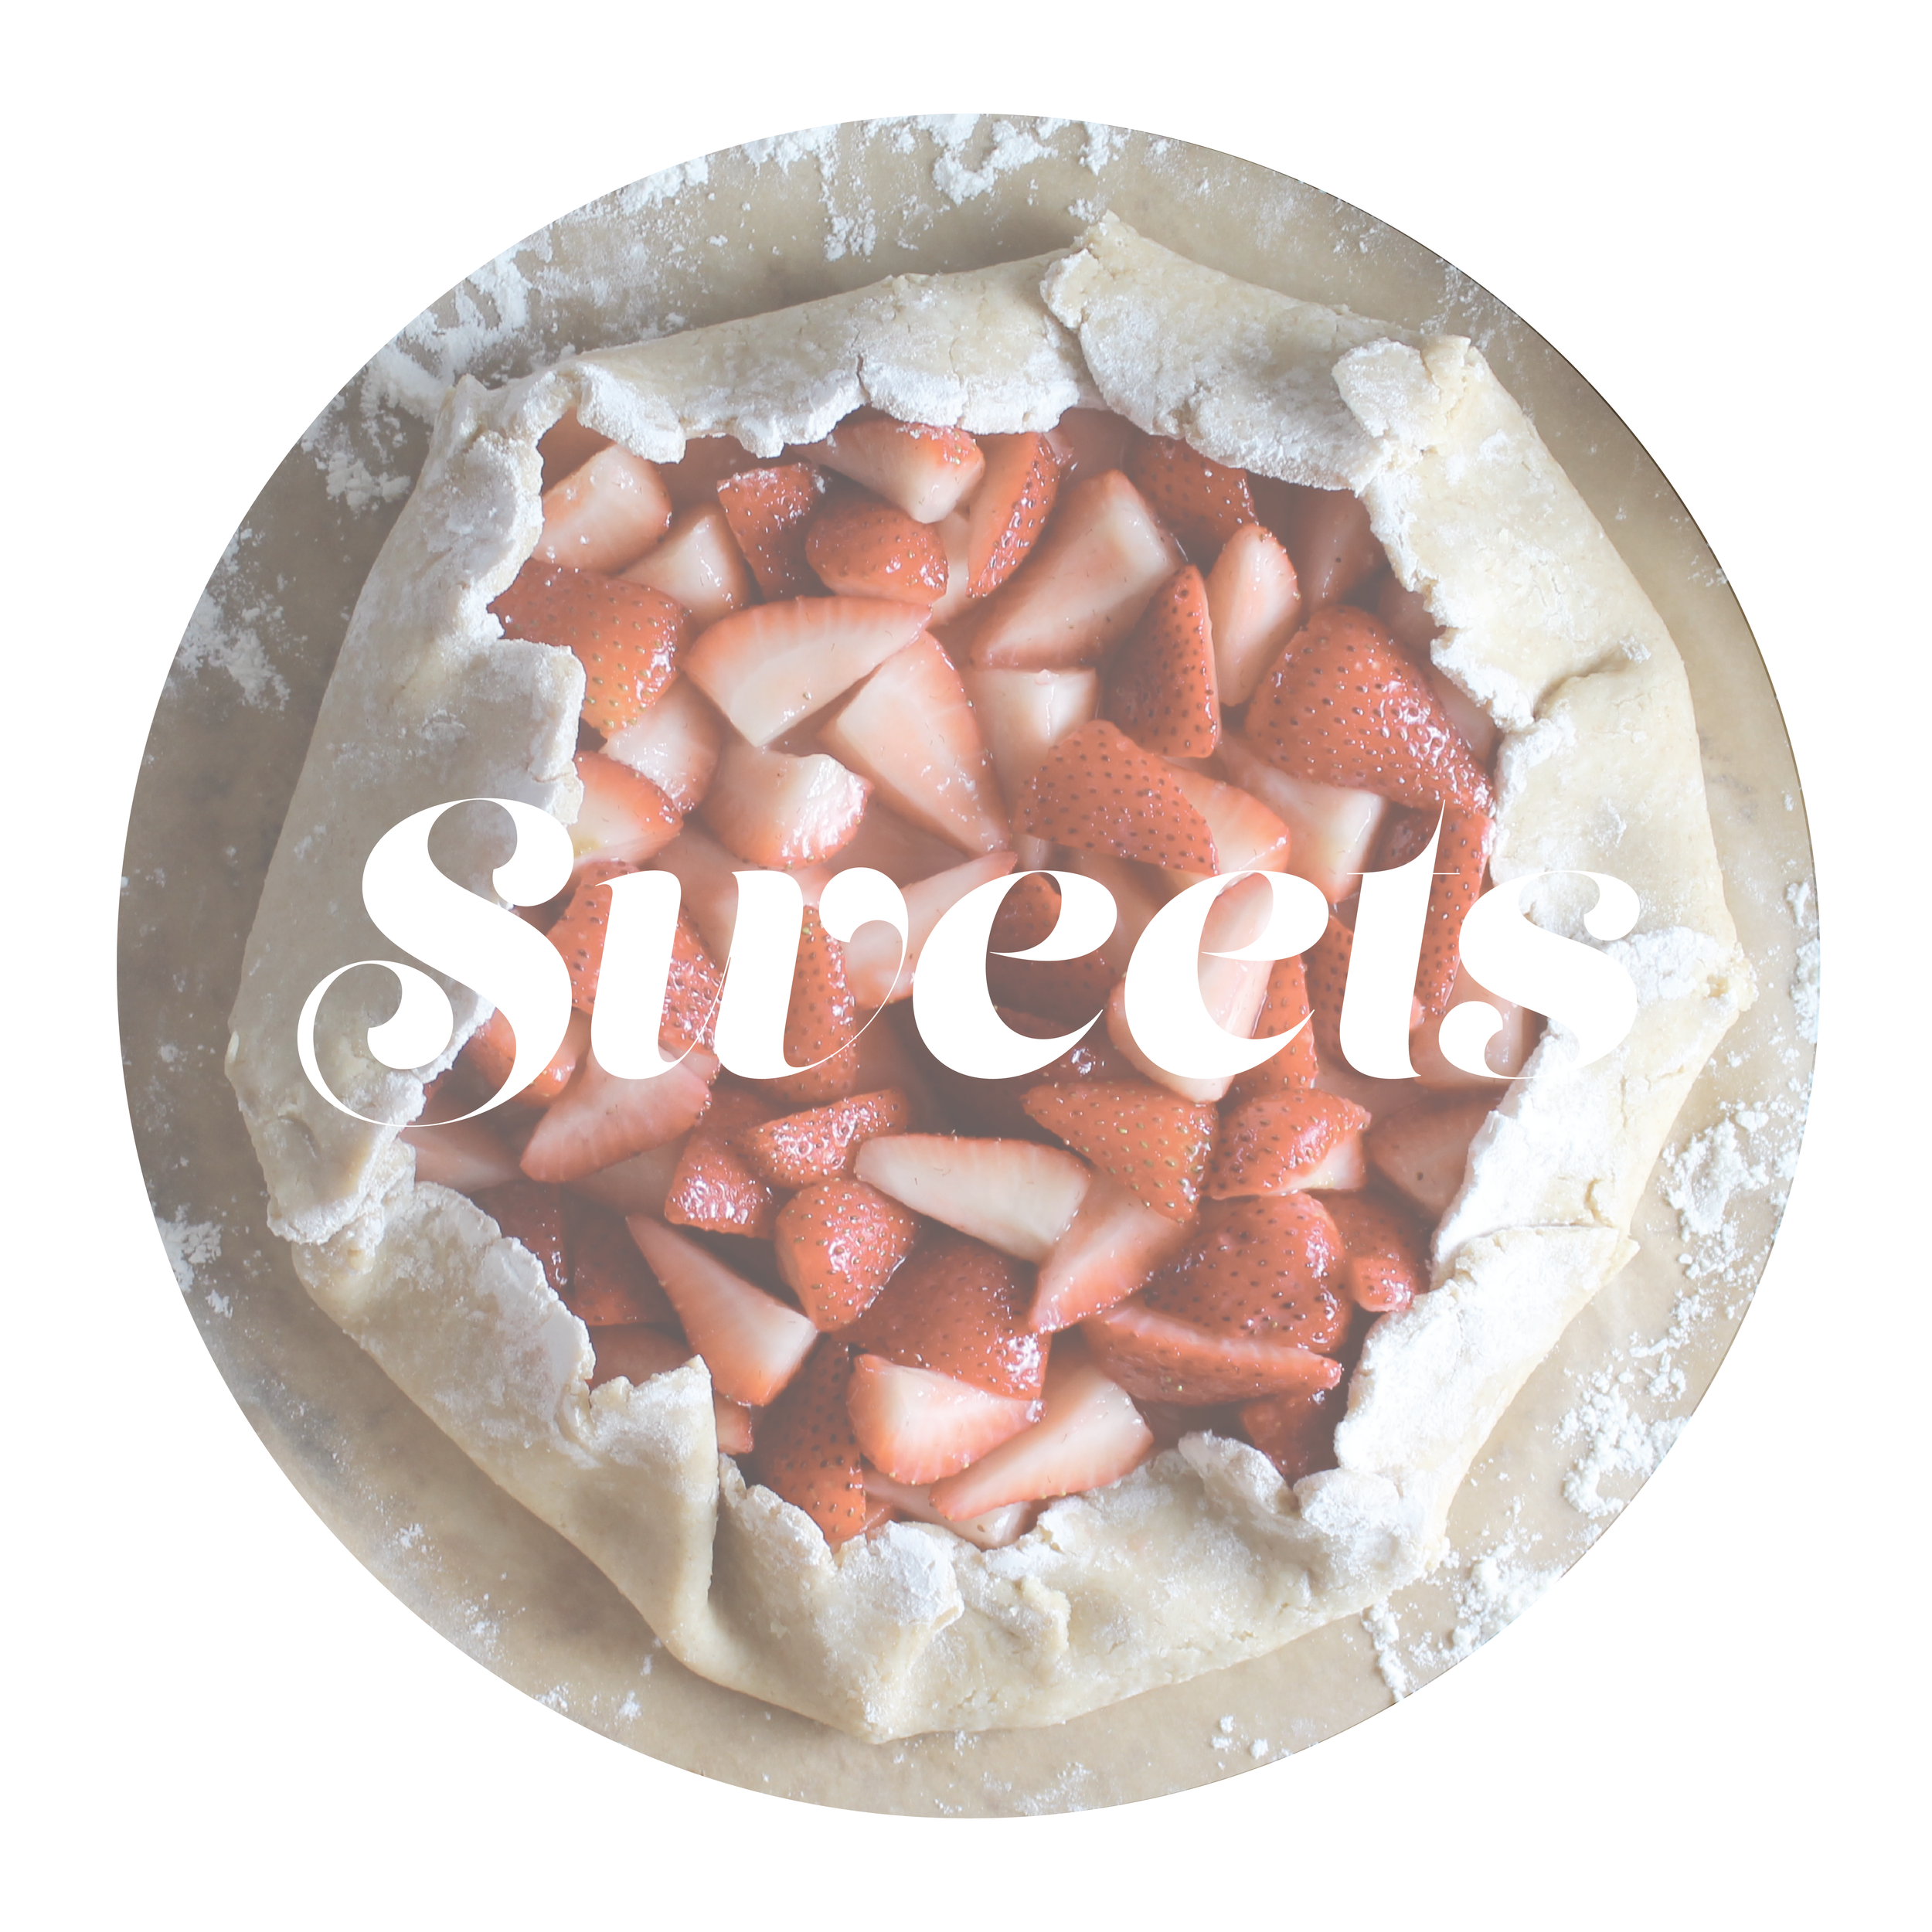 Sweets Recipe Icon | www.hungryinlove.com